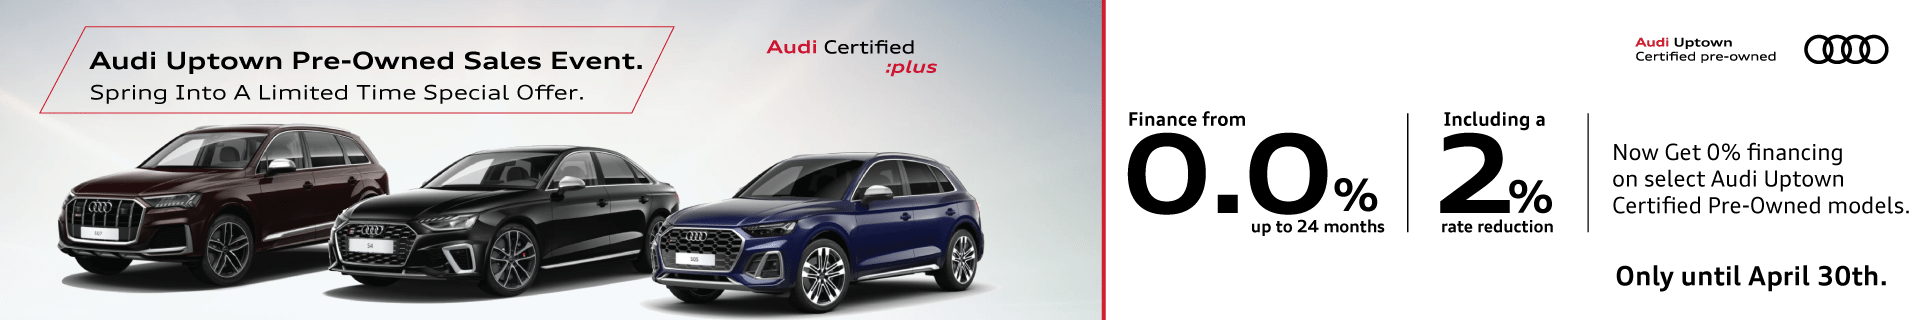 Audi Uptown April CPO Offer